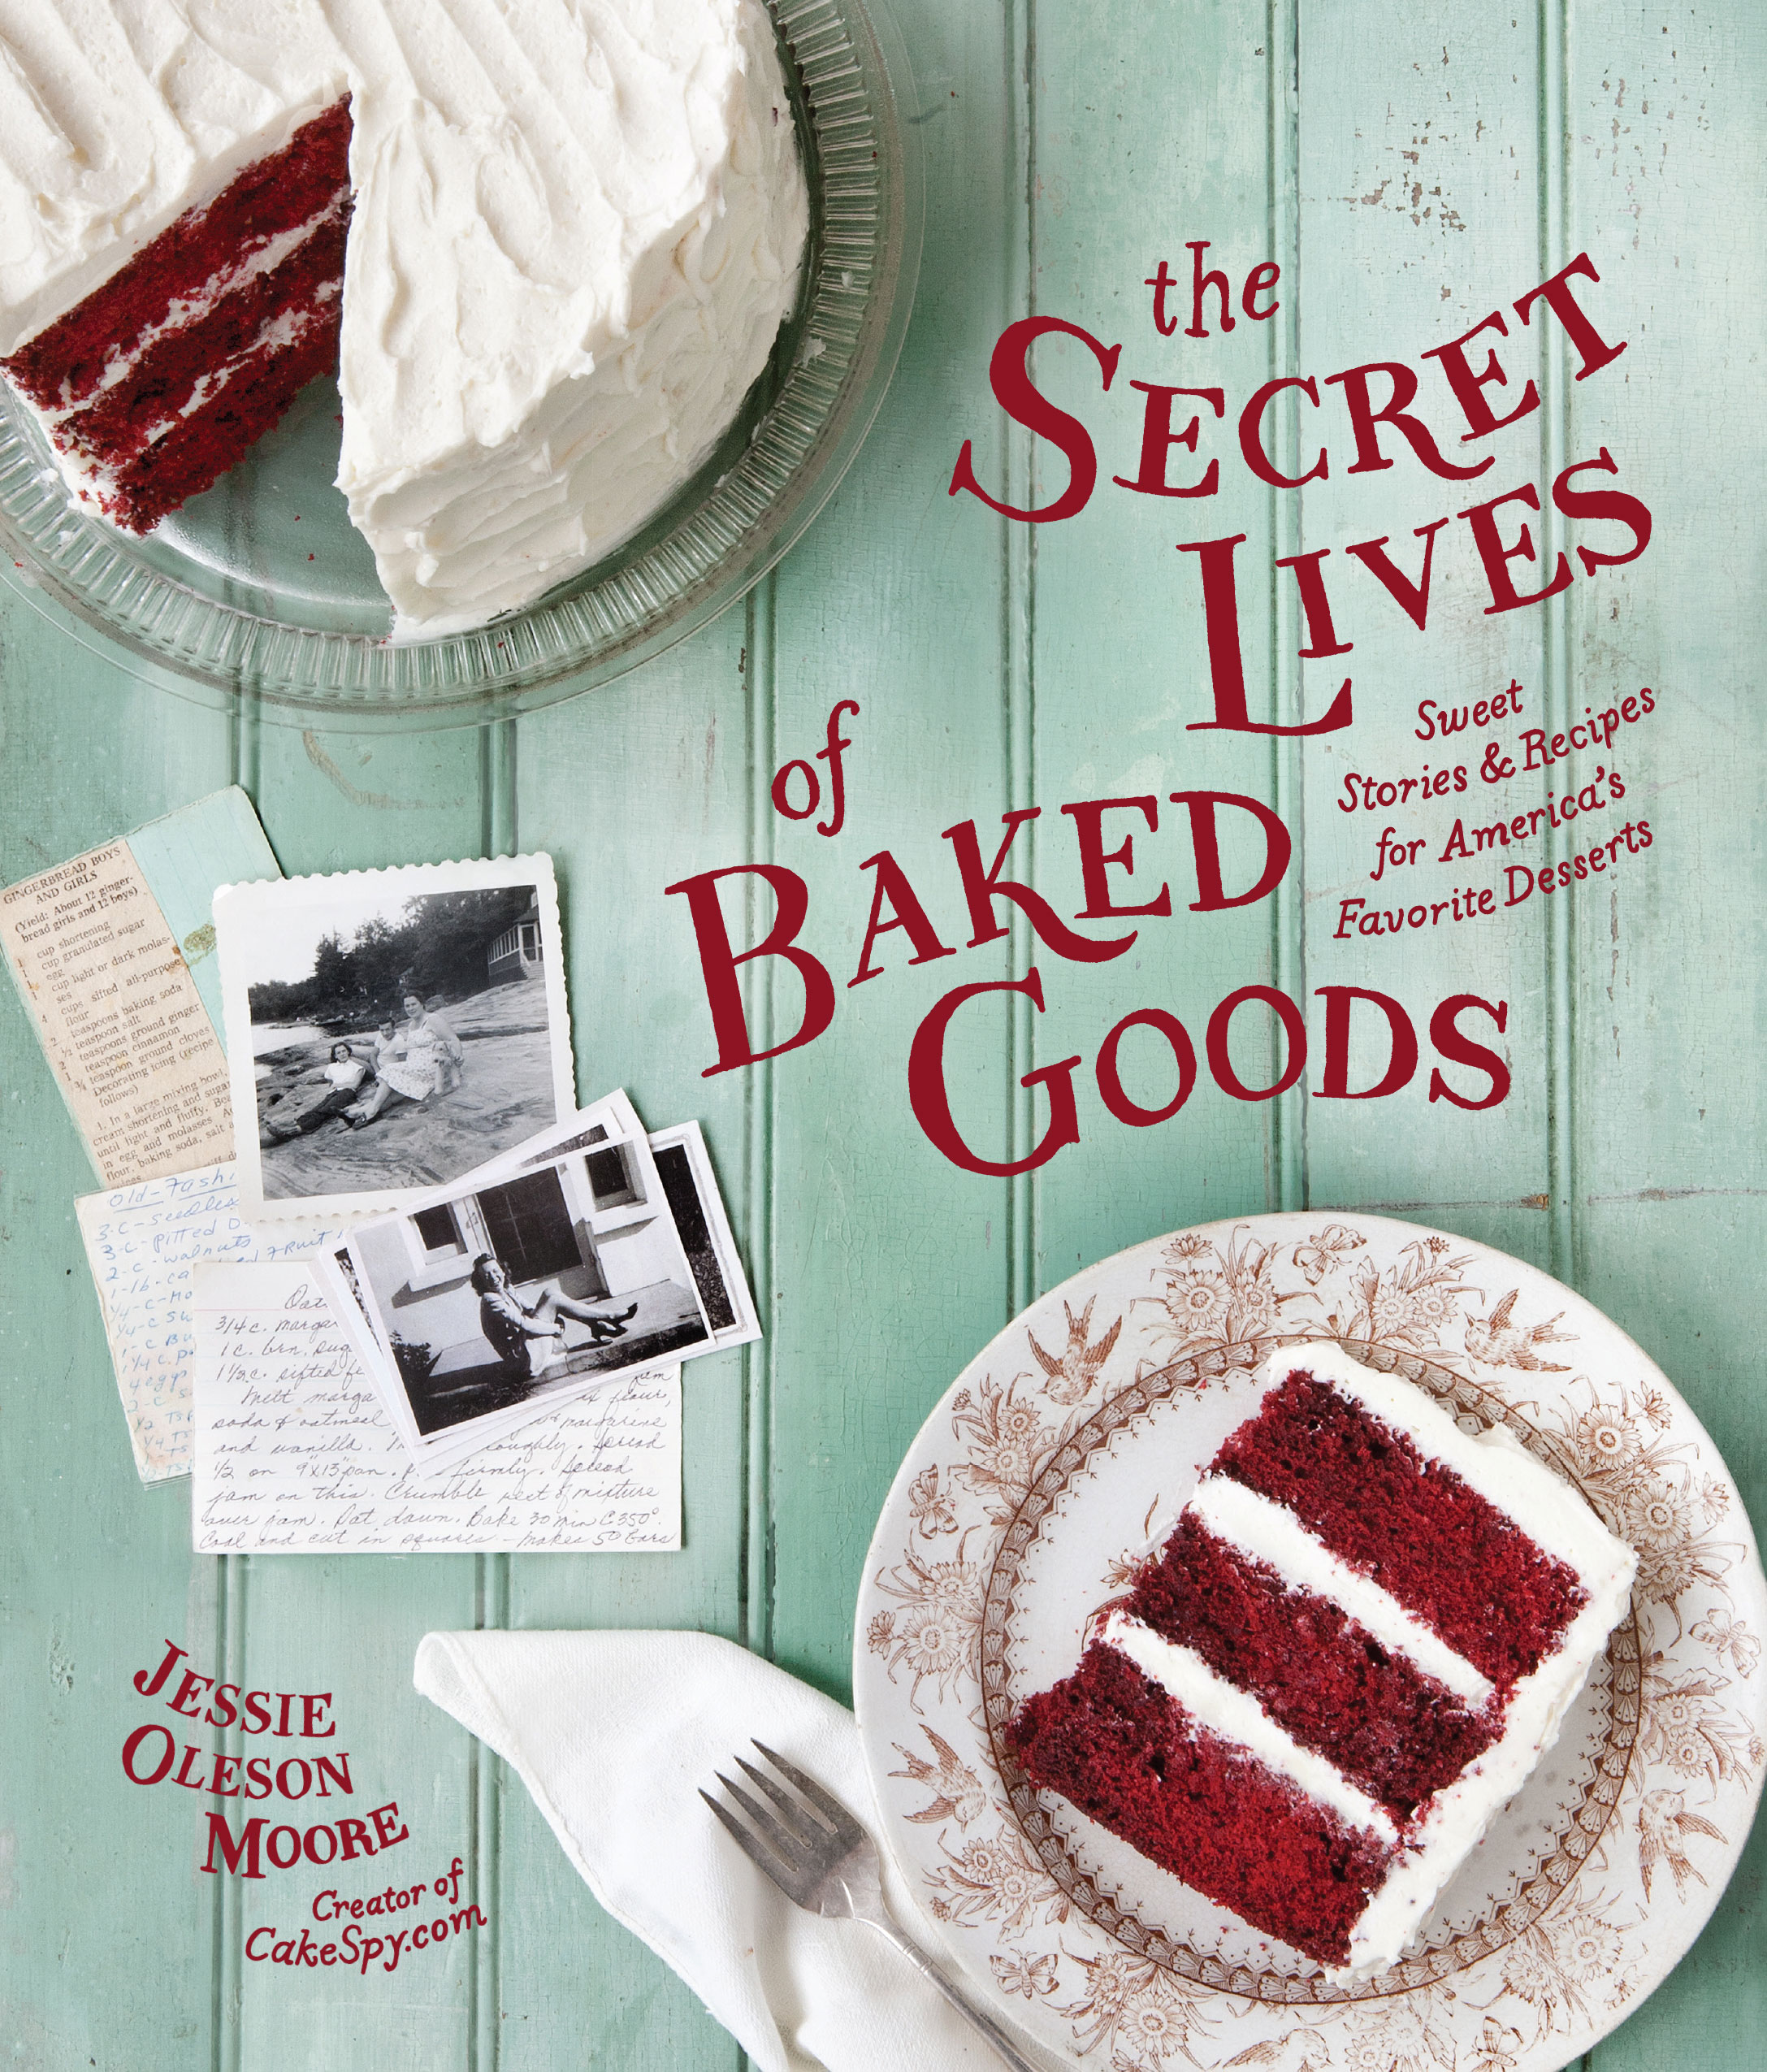 TBT Cookbook Review: The Secret Lives of Baked Goods